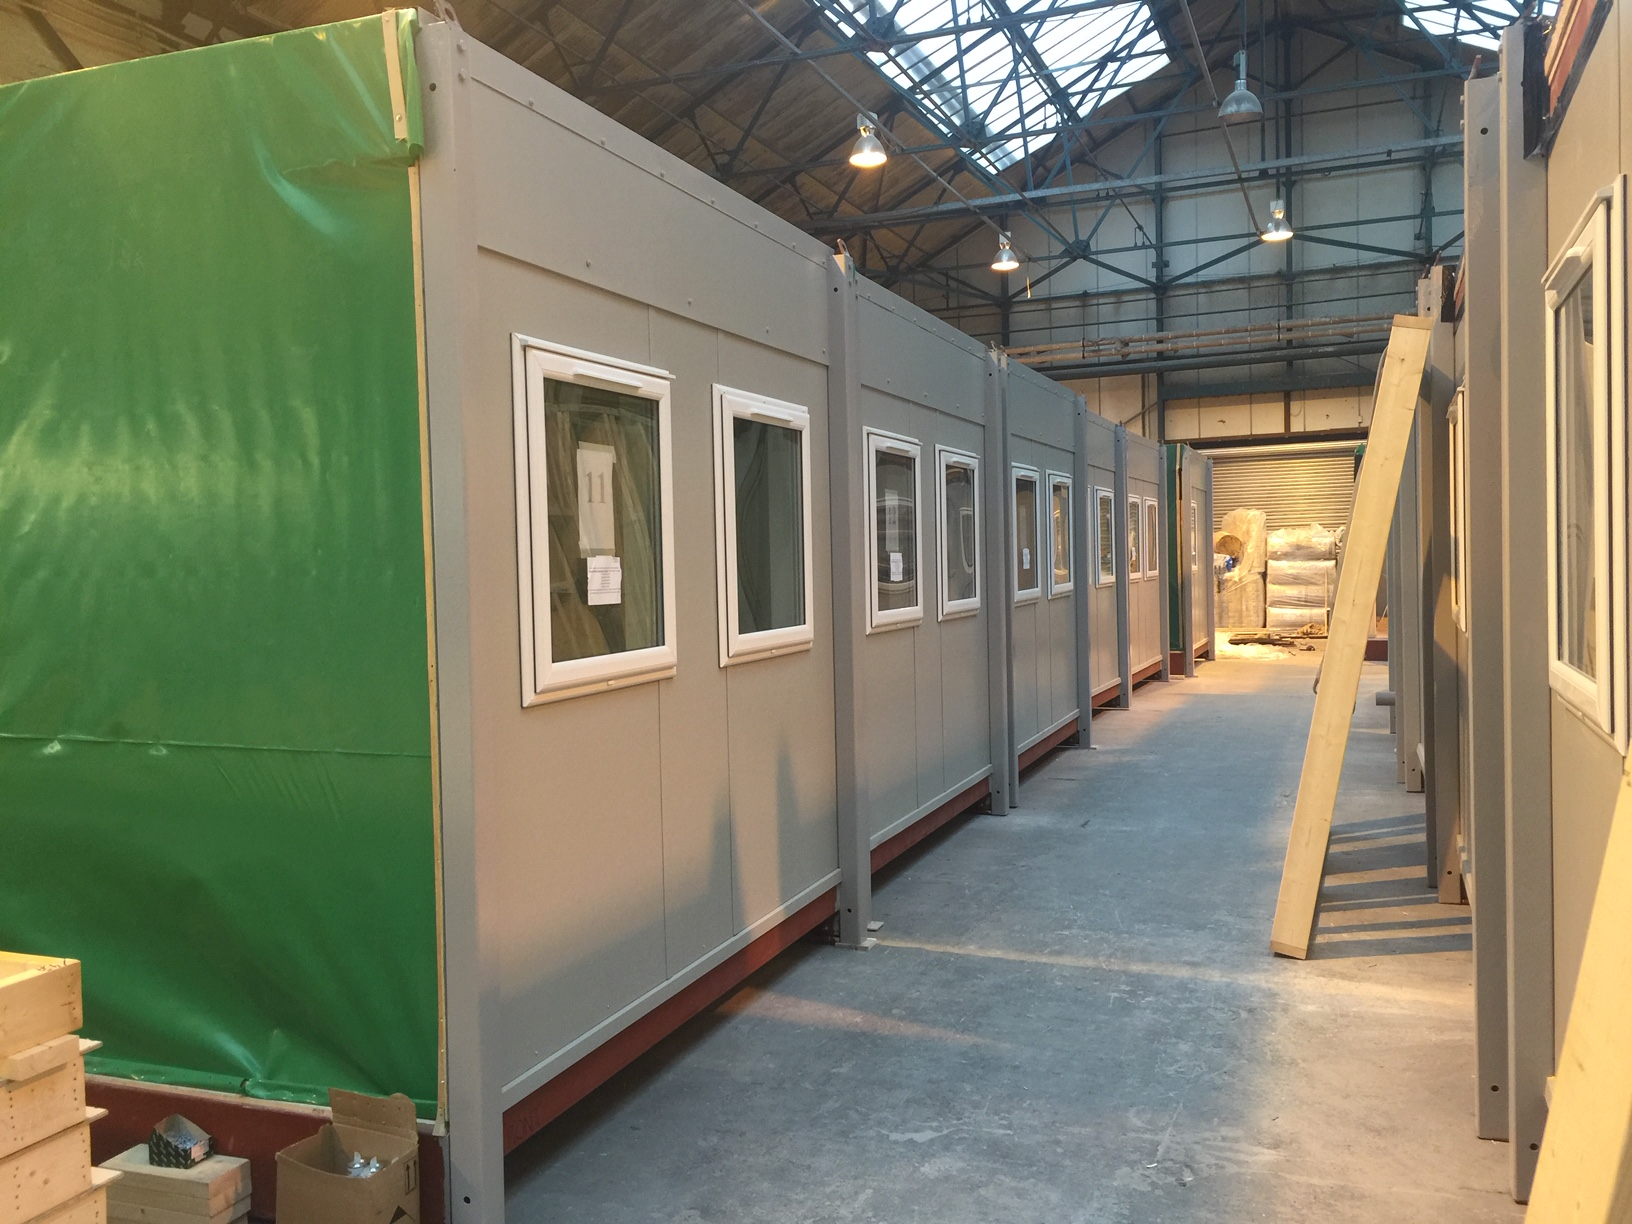 Modular building in the factory awaiting transport